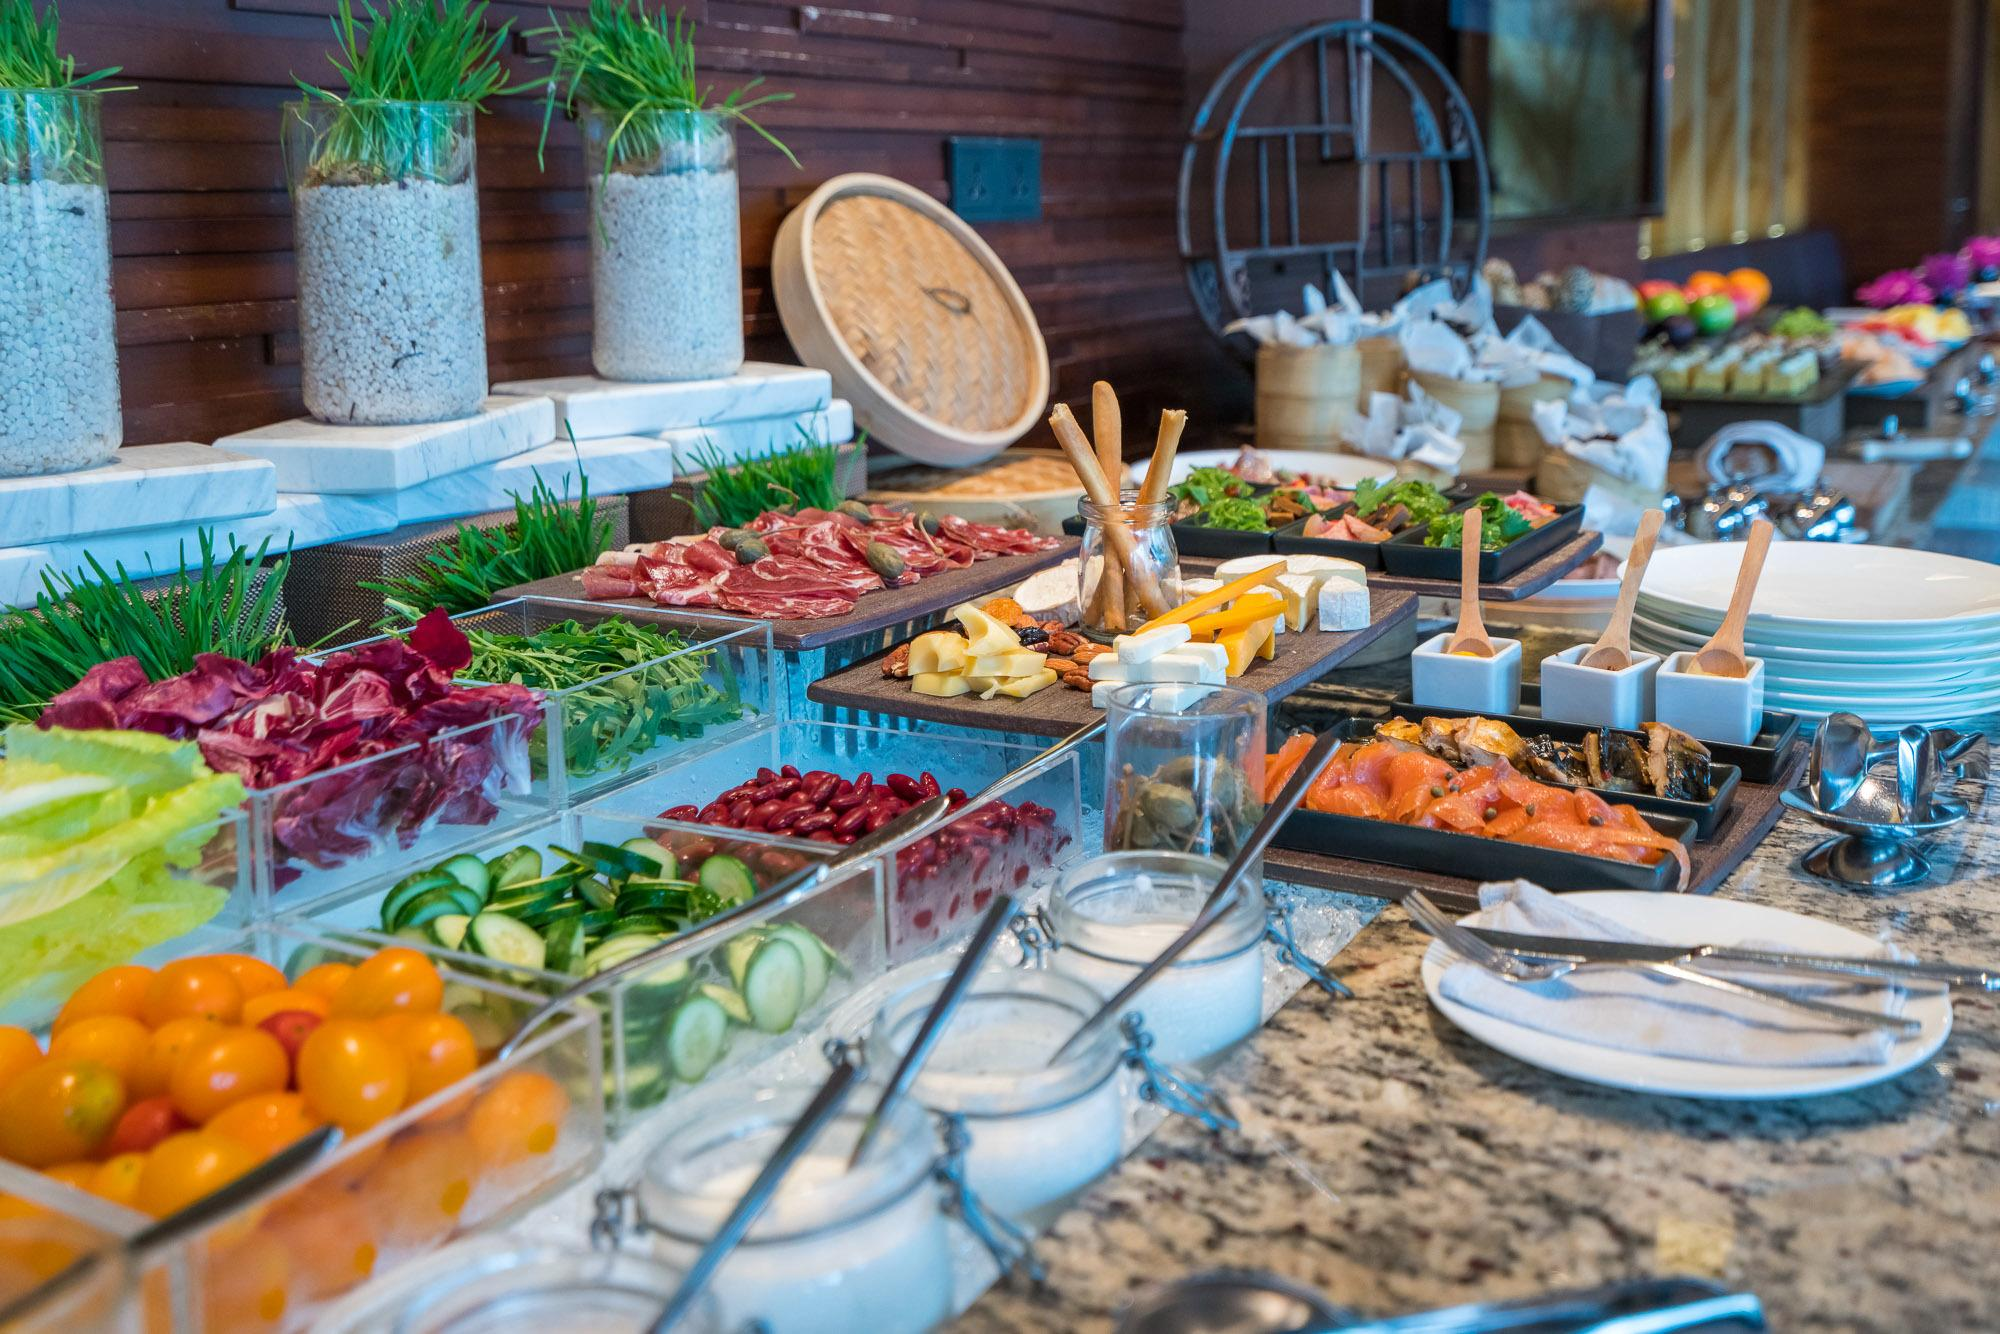 Salad and regional selections at the Mandarin Oriental Pudong, Shanghai Club Lounge buffet.